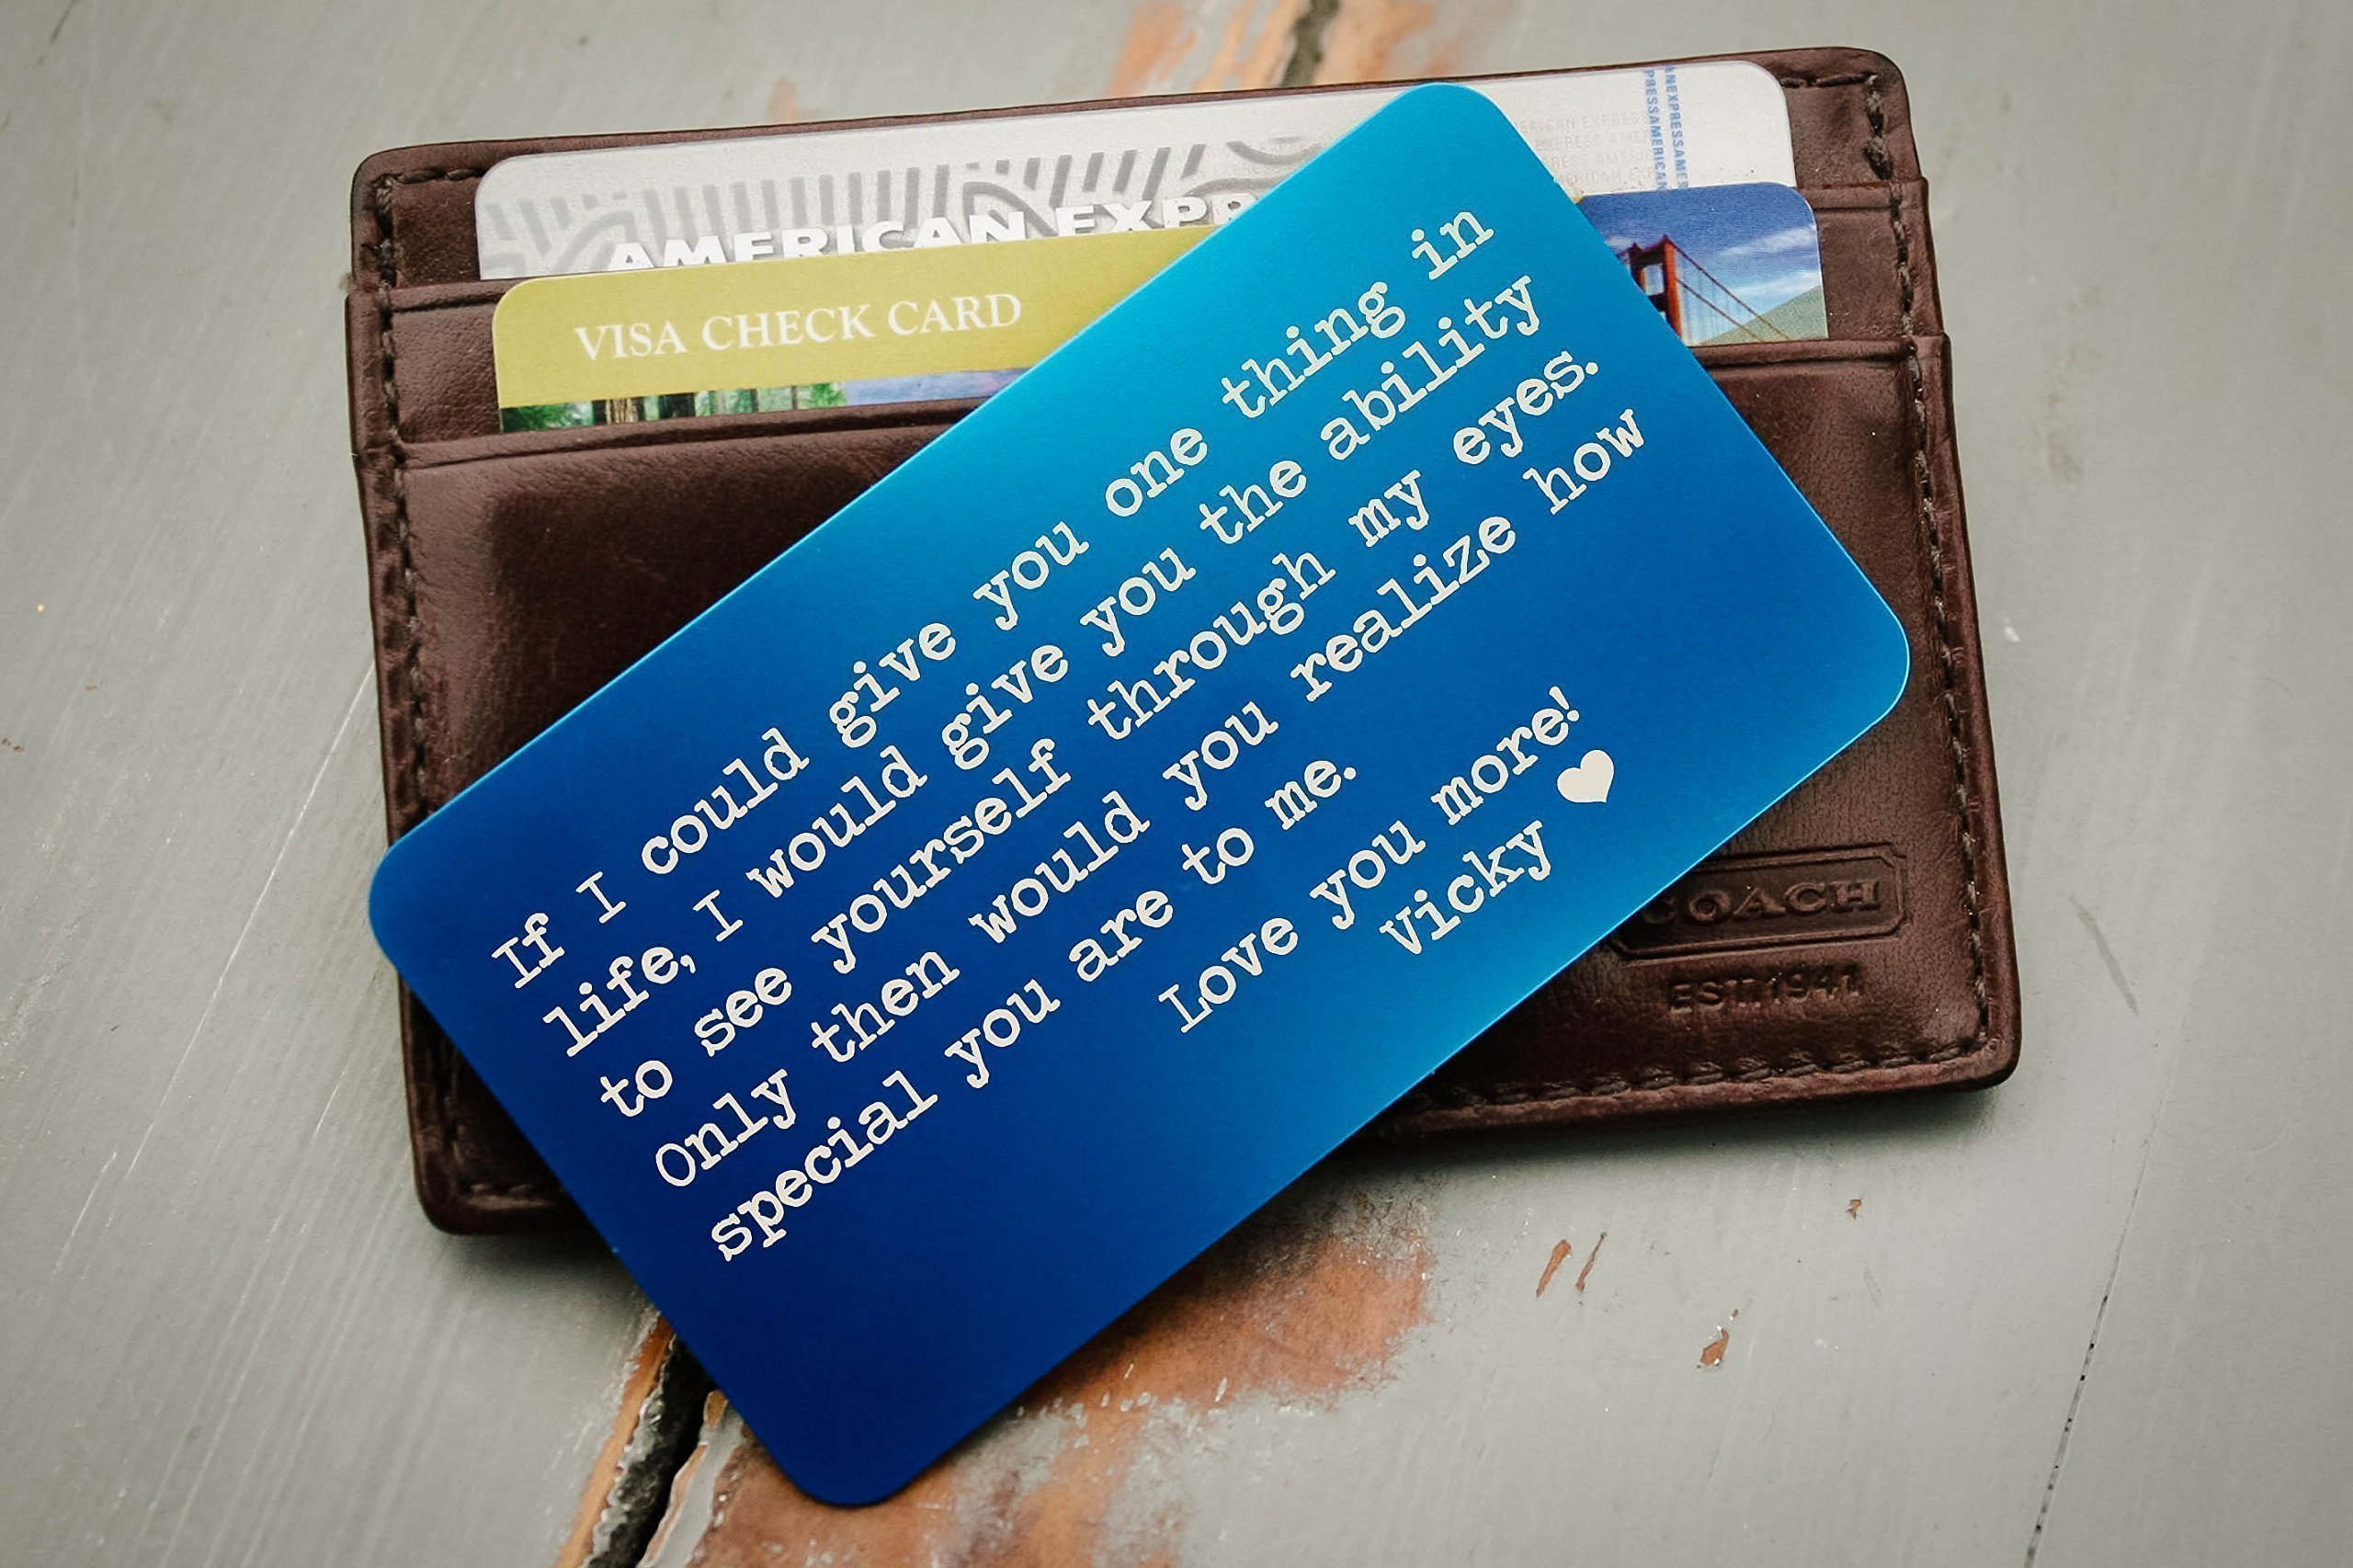 Custom Wallet Card, Personalized Engraved Wallet Insert, Personalized Wallet Card, Mini Love Note, Metal Wallet Card - Anniversary, Valentine's Day, Father's Day, Groom's Gift For Him